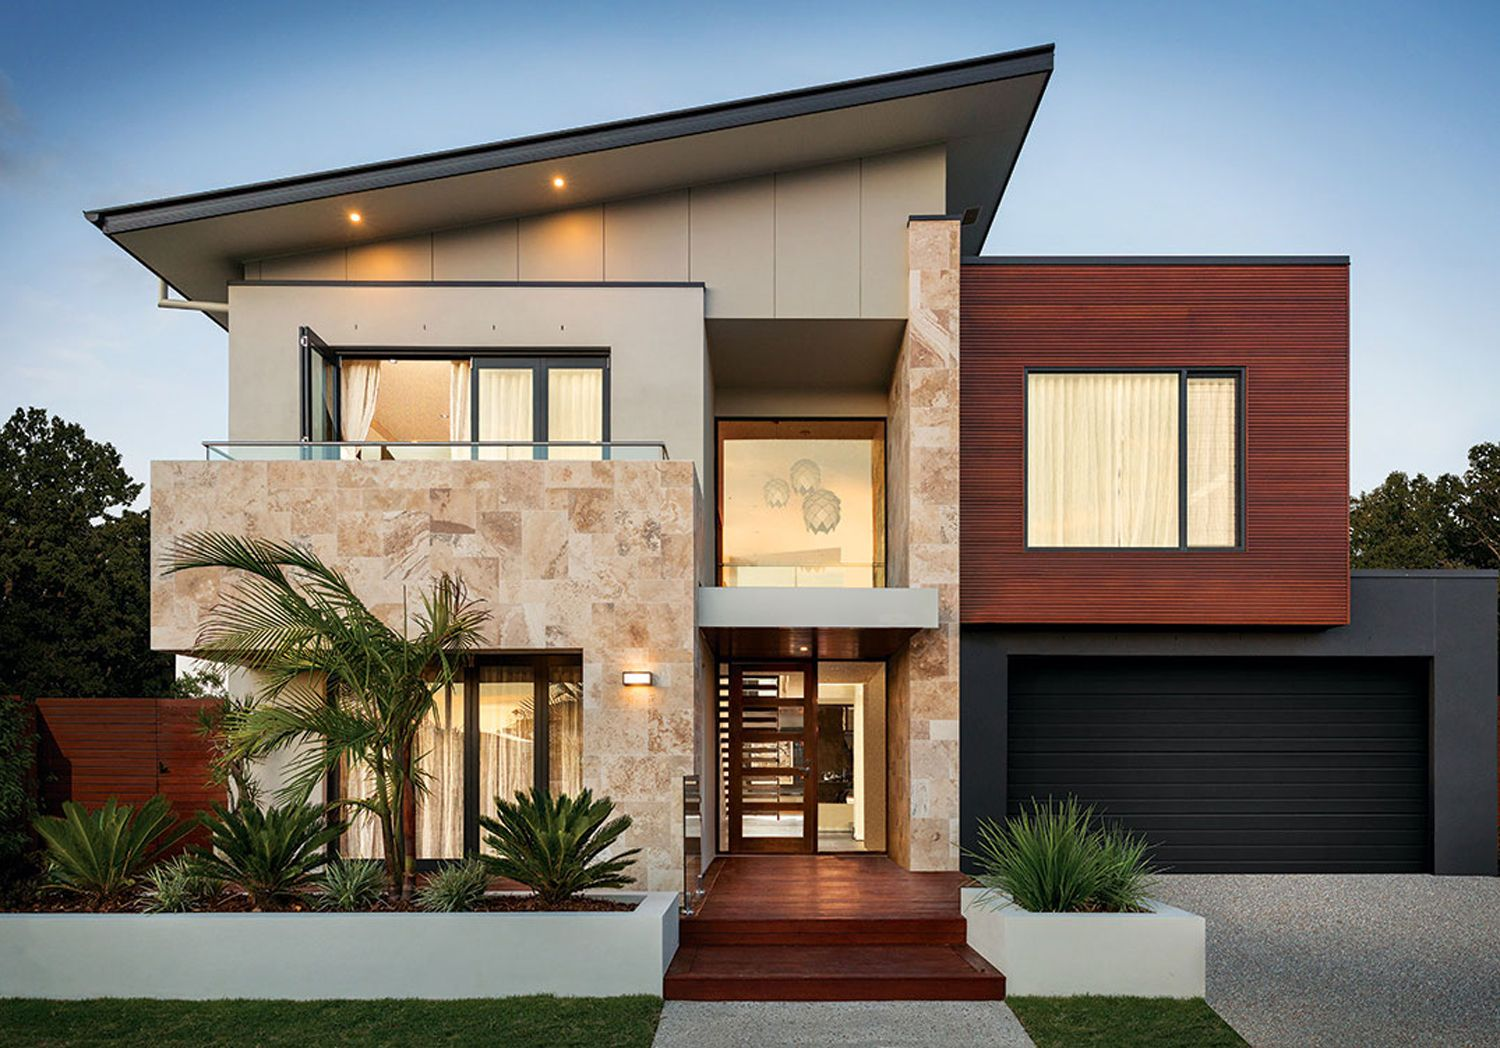 This Incredible Modern Mansion Is Definition Of Perfection Take A Look Luxury Modern Homes M Facade House Contemporary House Exterior House Designs Exterior